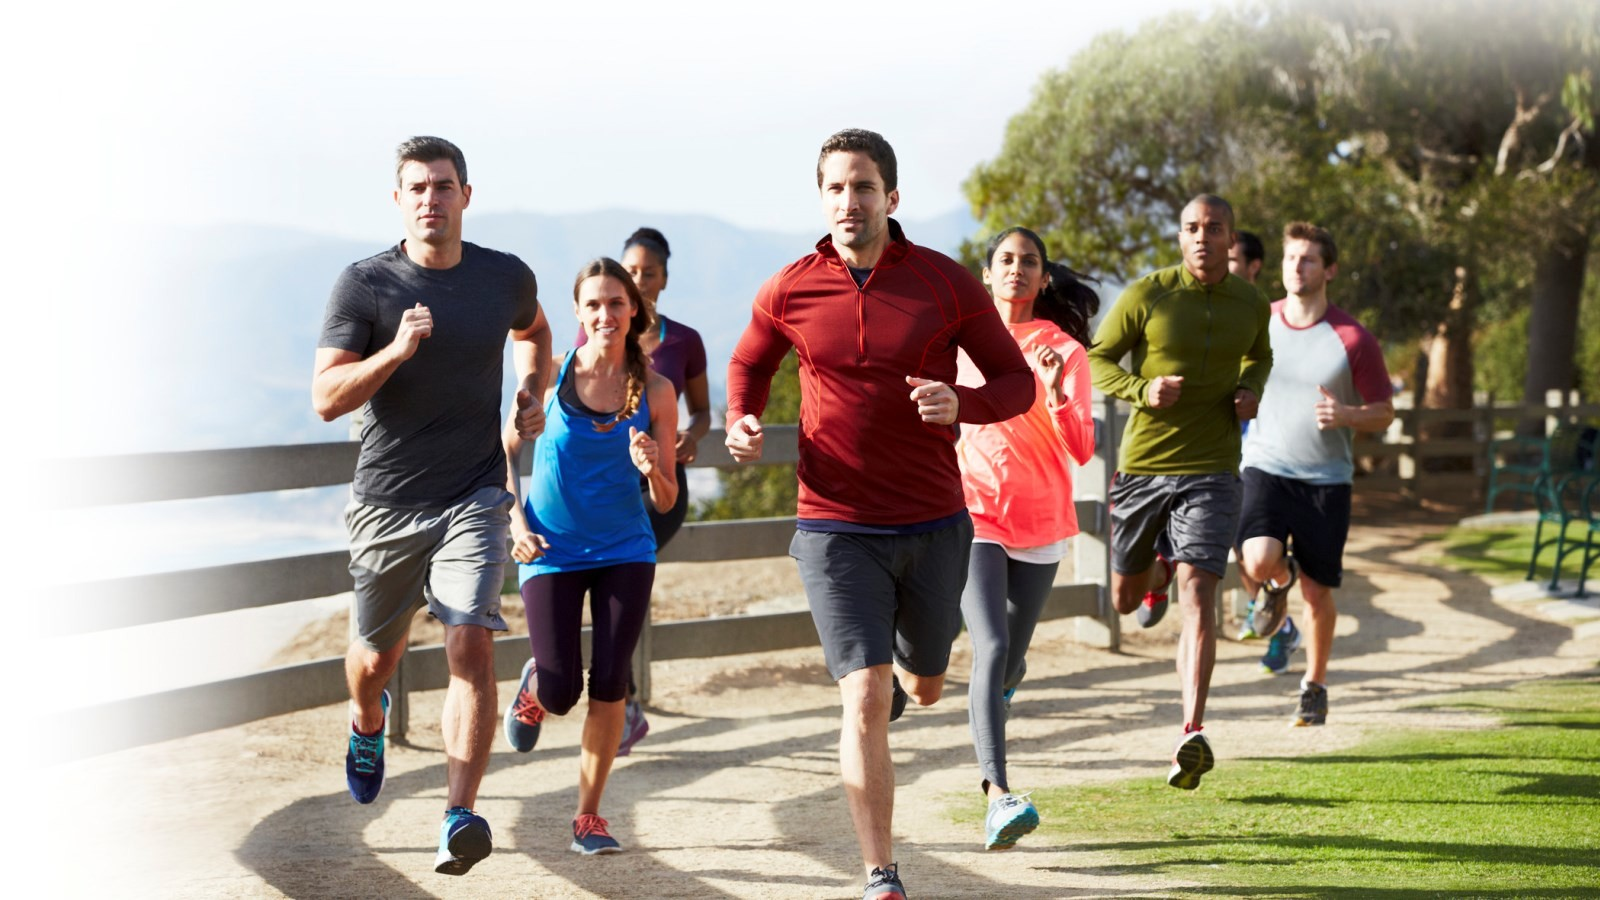 Experts confirm that running, especially in a group, can do wonders for mental health